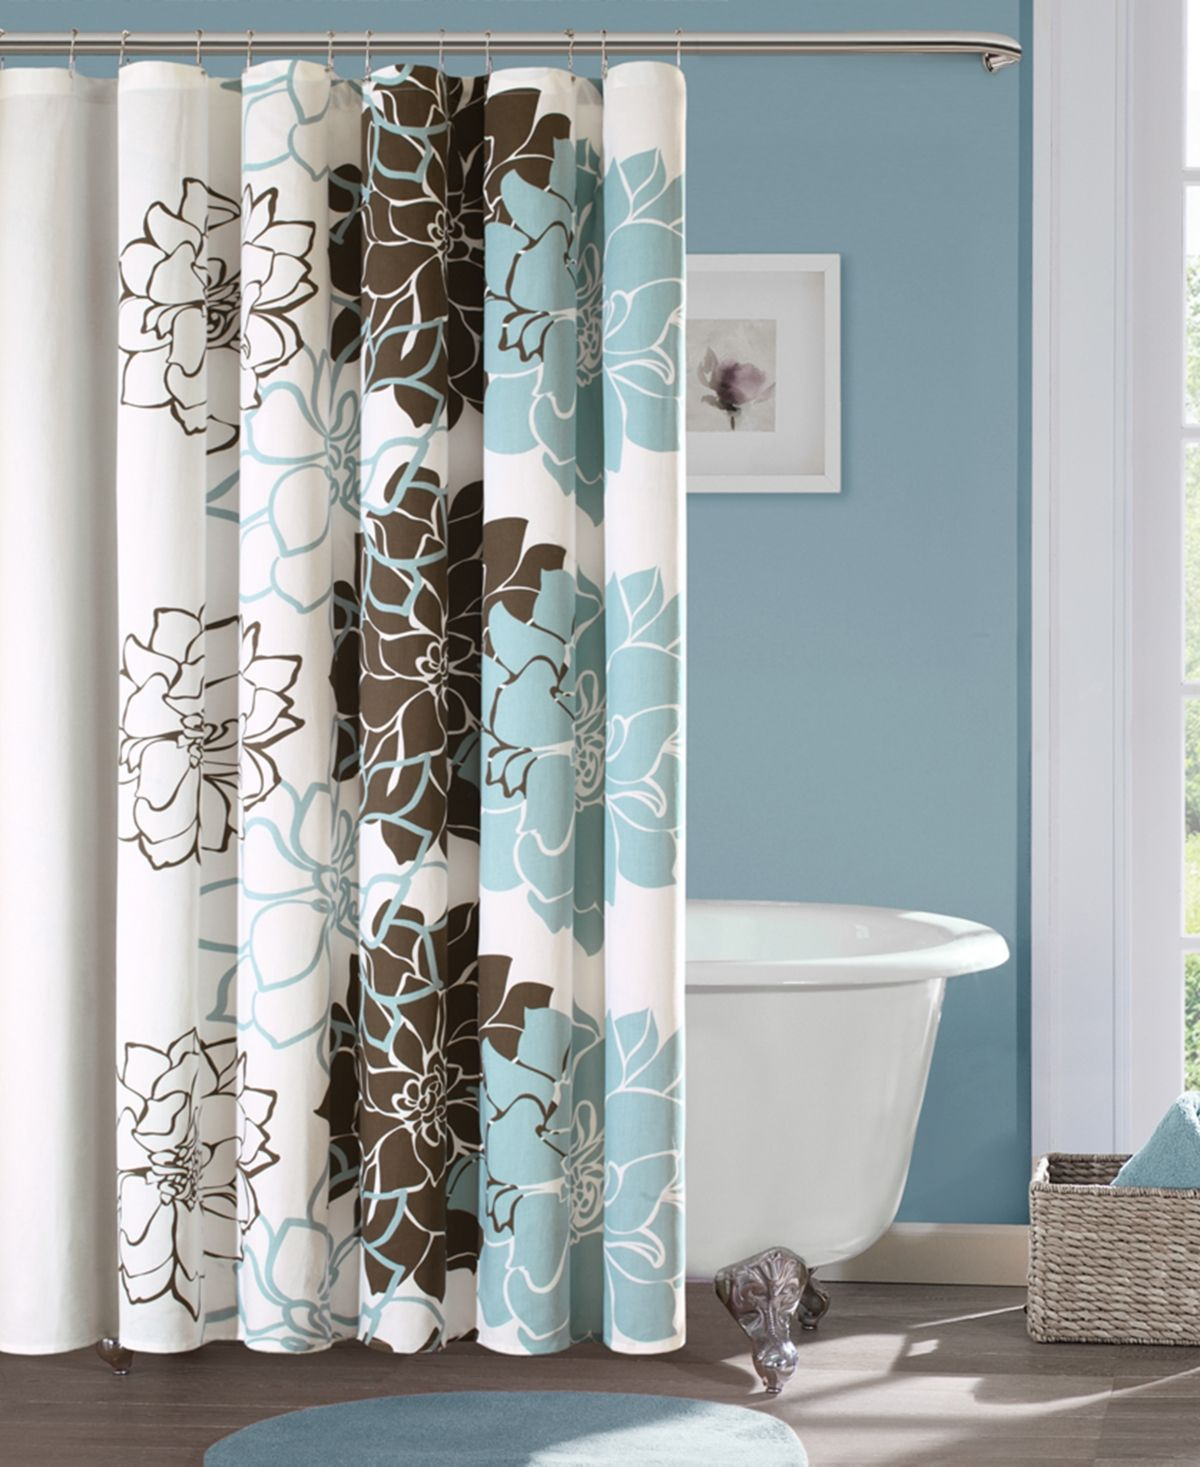 Madison Park Lola 72 X 72 100 Cotton Floral Printed Shower